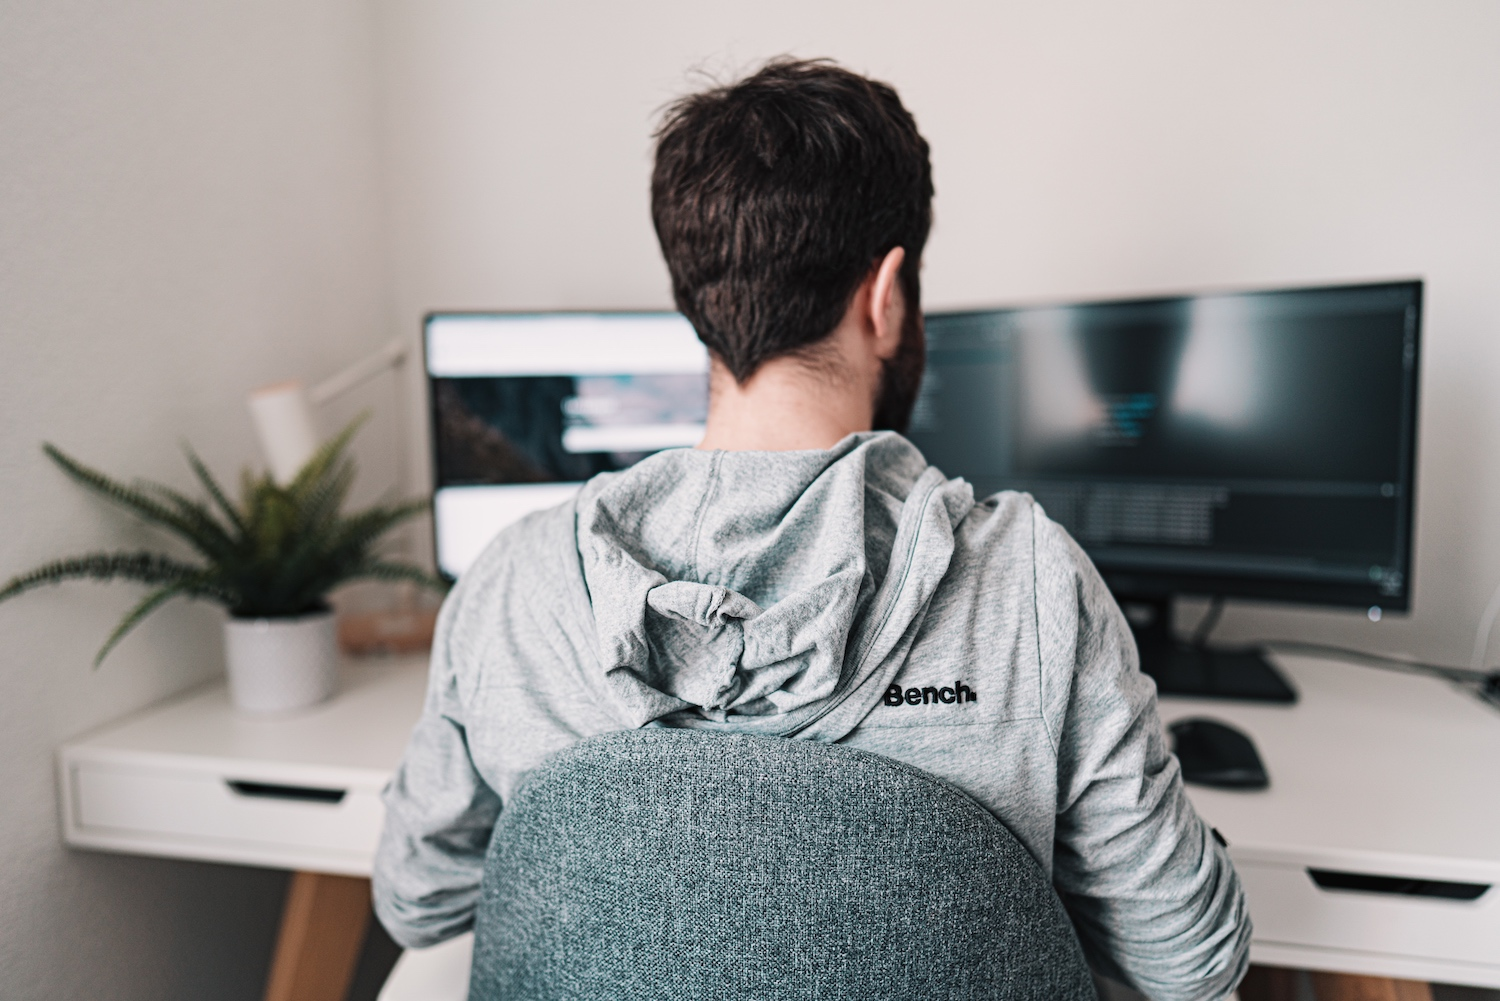 Man working remotely two computer screens